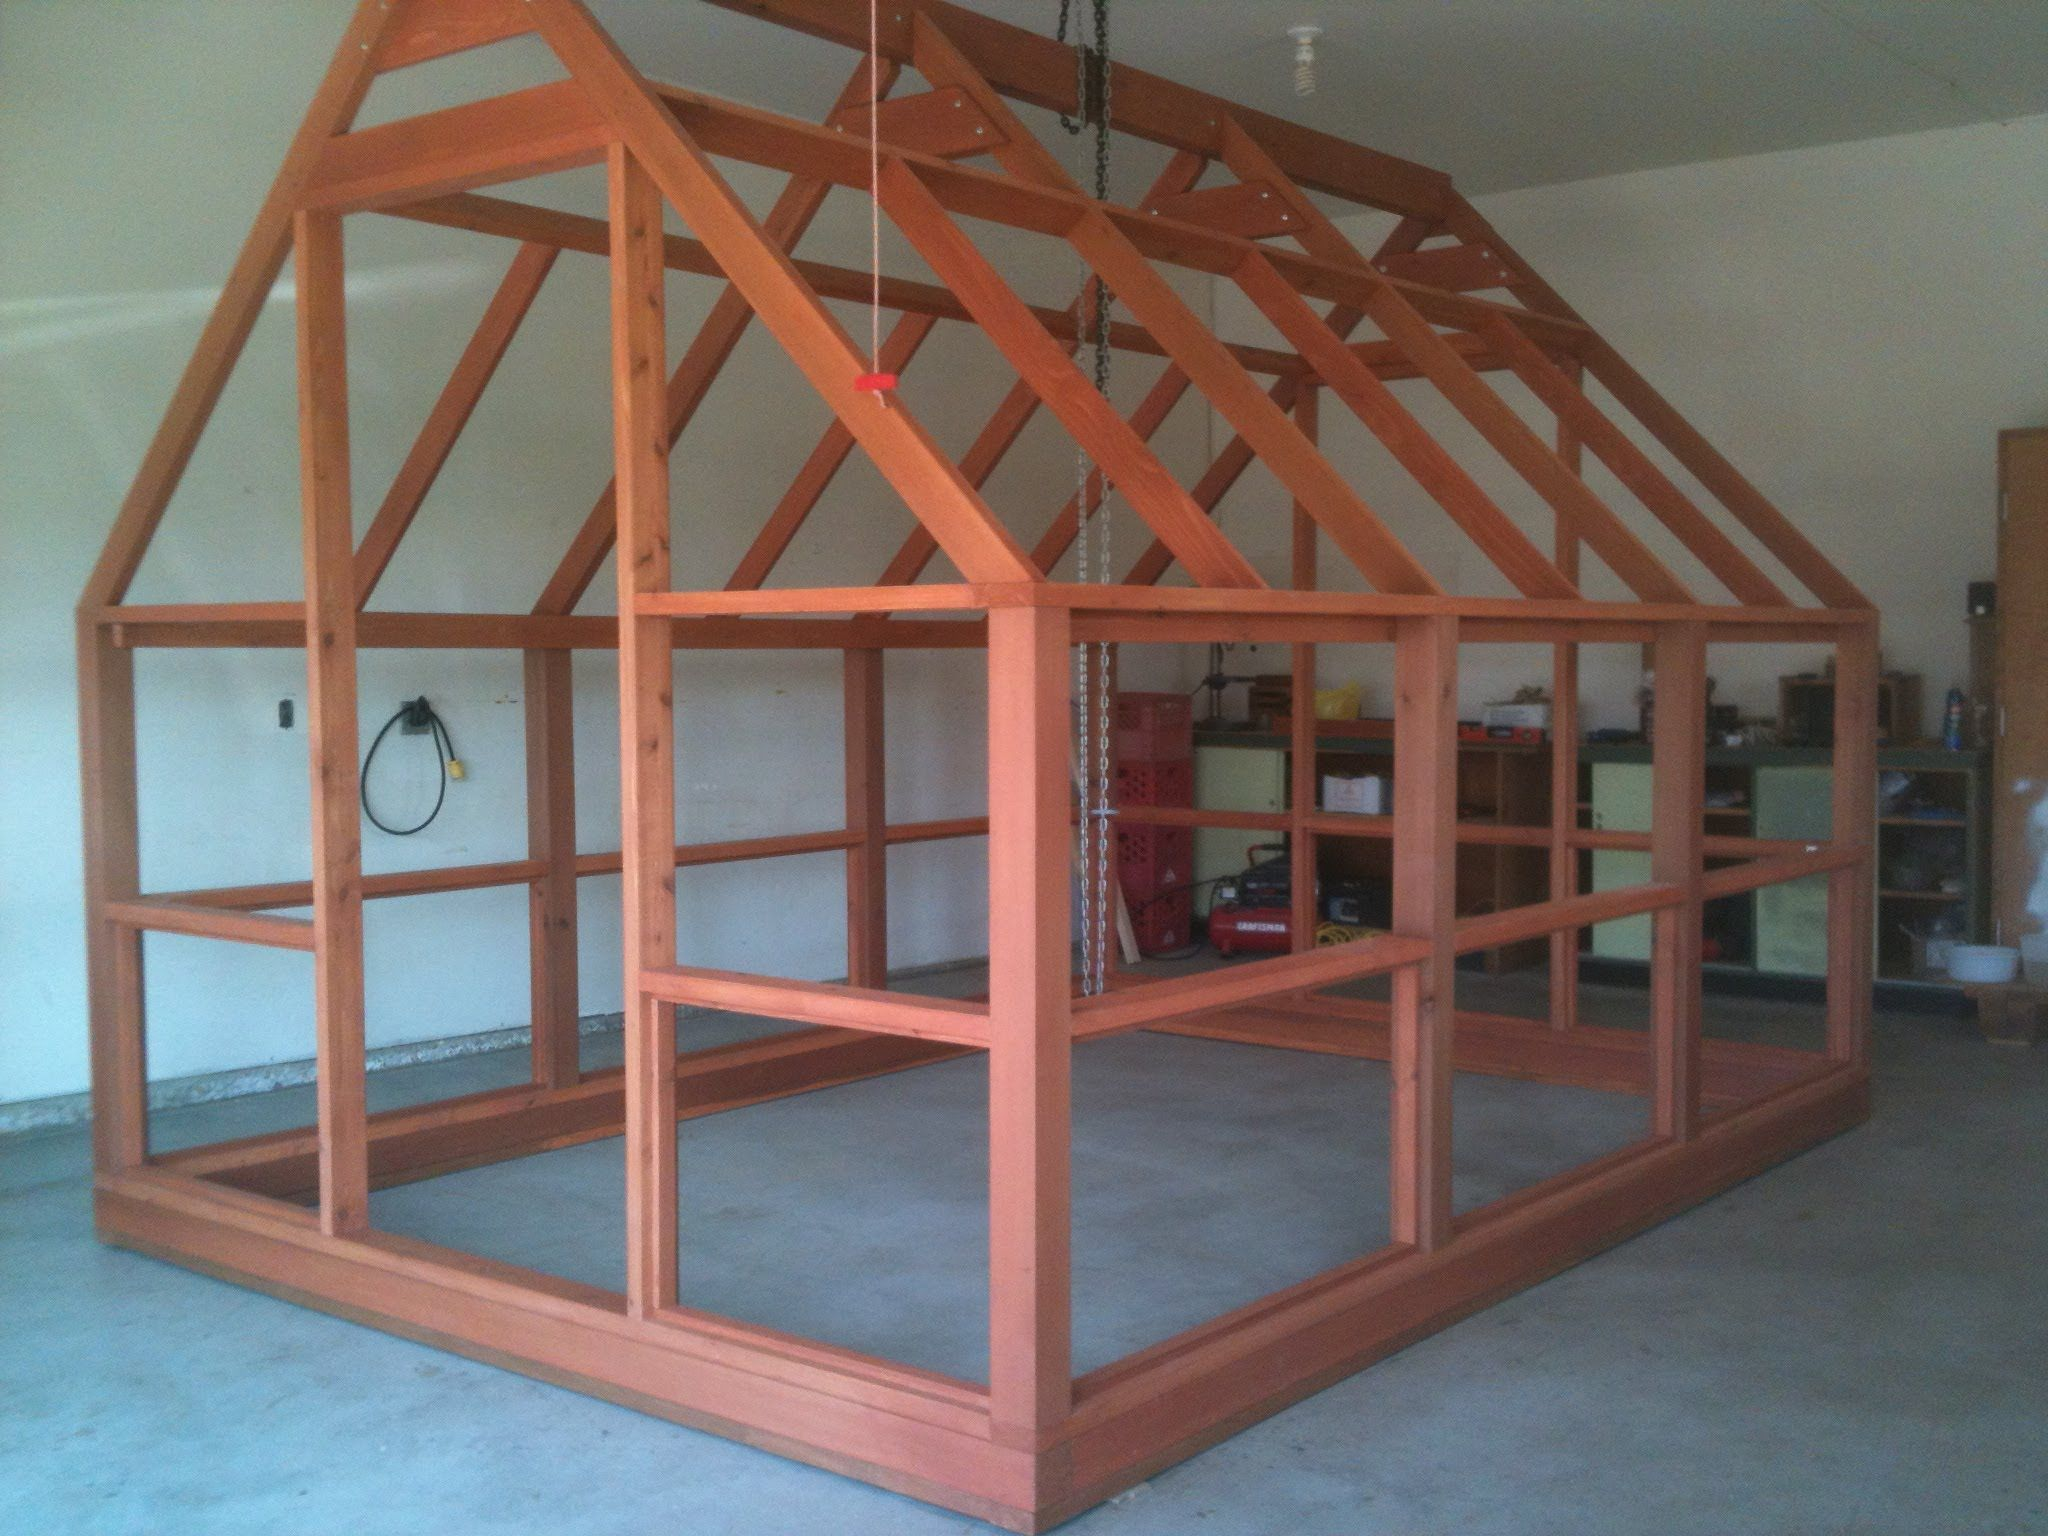 Greenhouse plans, designs and blueprints: Critically acclaimed hobby on